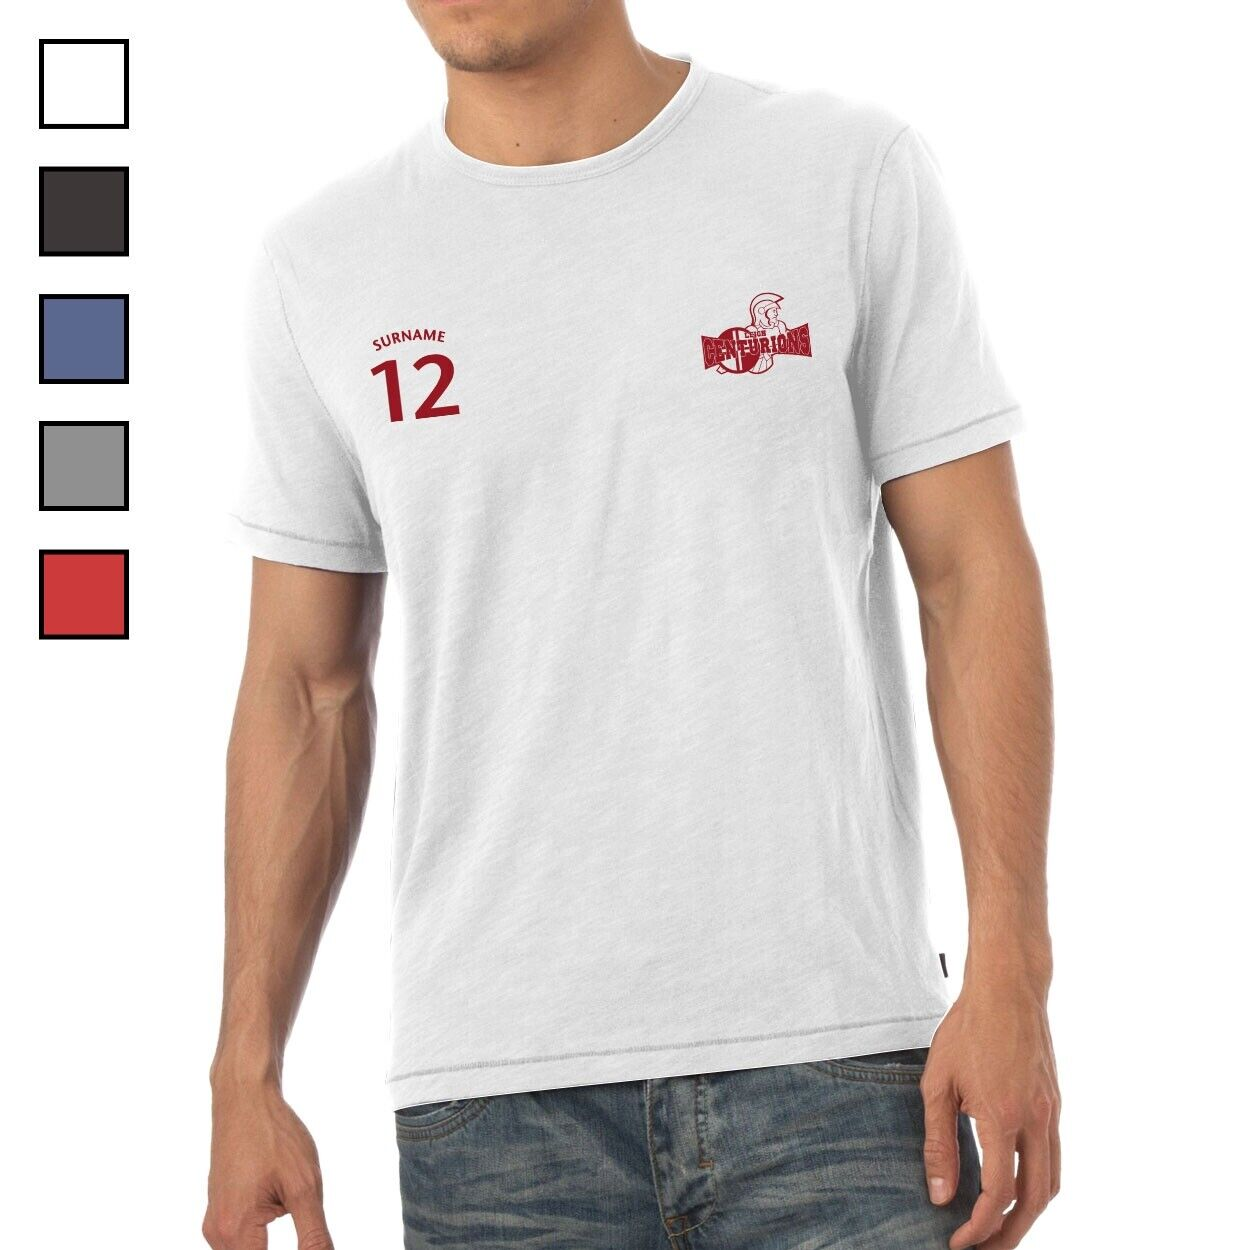 Leigh Centurions - Personalised Mens T-Shirt (SPORTS)